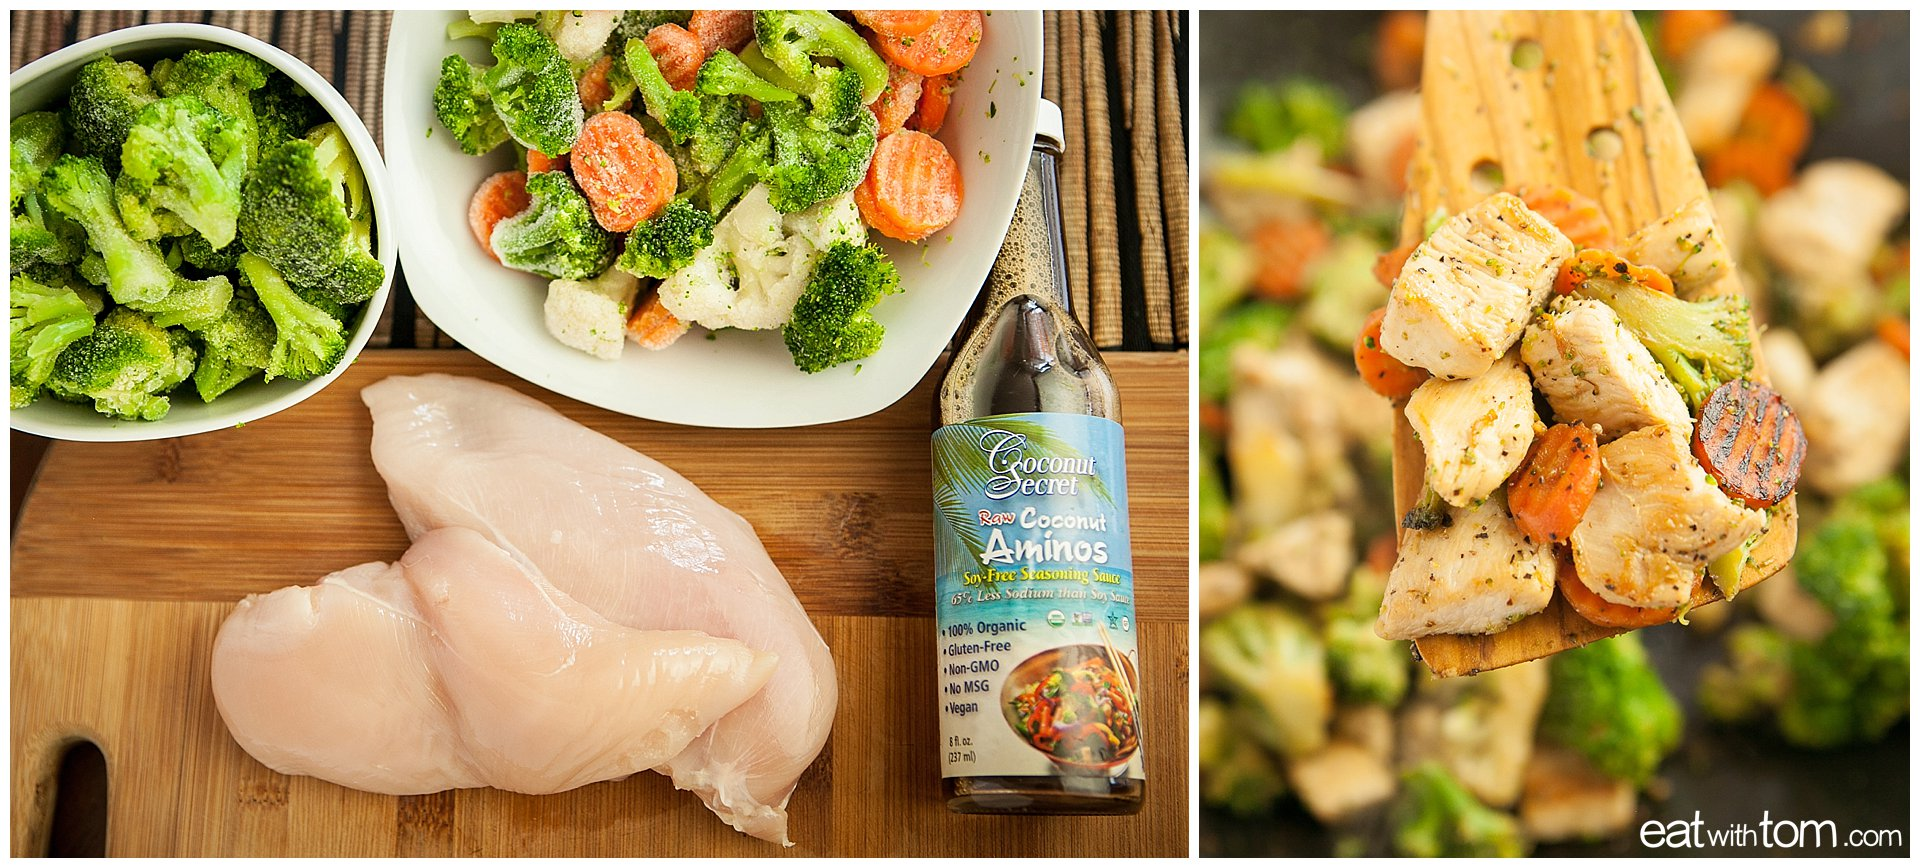 Quick chicken stir fry recipe with coconut aminos and frozen vegetables